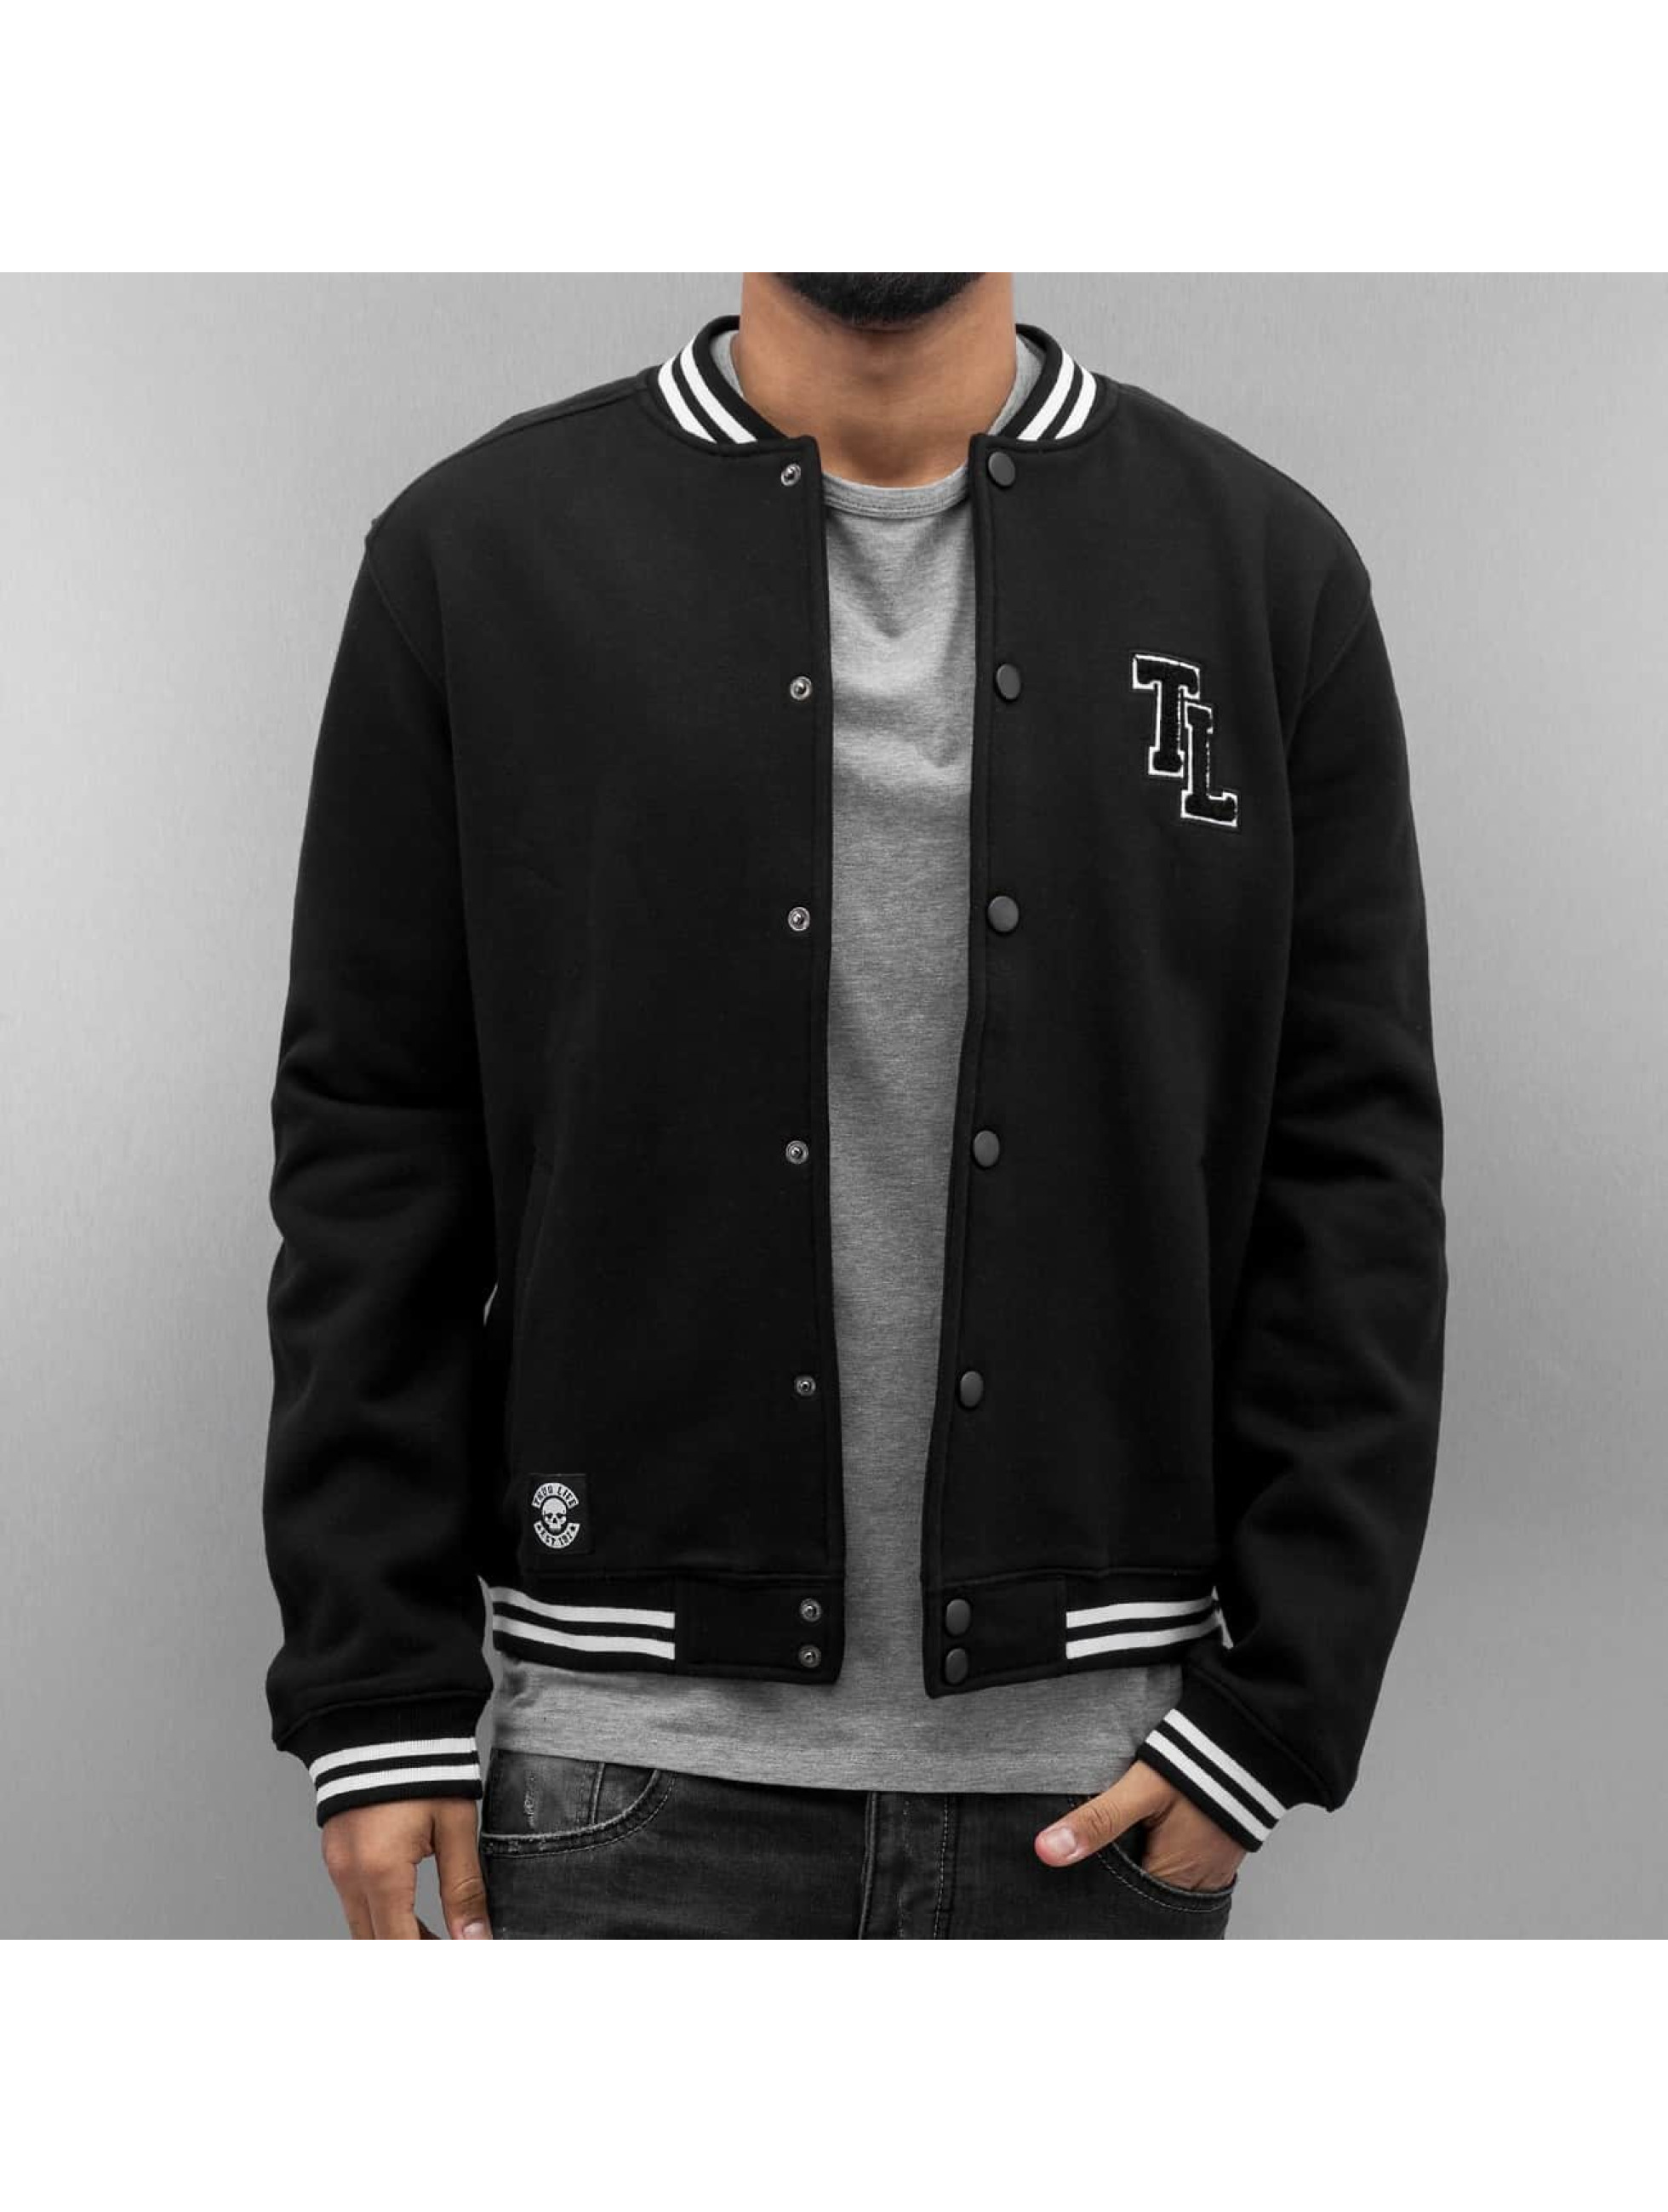 Thug Life / College Jacket Throne in black L